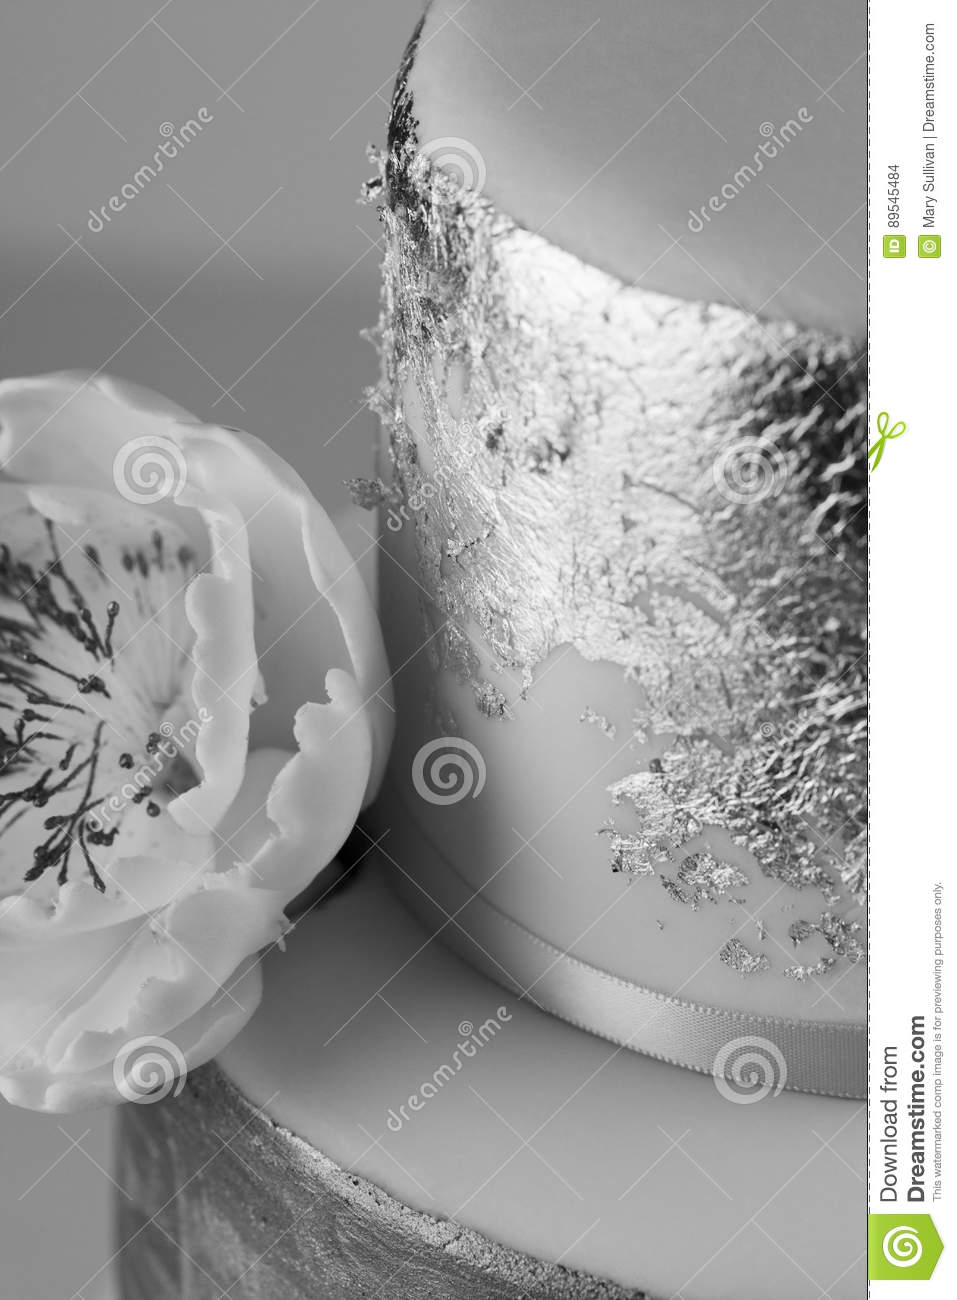 Silver Leaf Decoration White Cake With Silver Leaf Decoration And Icing Sugar Flower